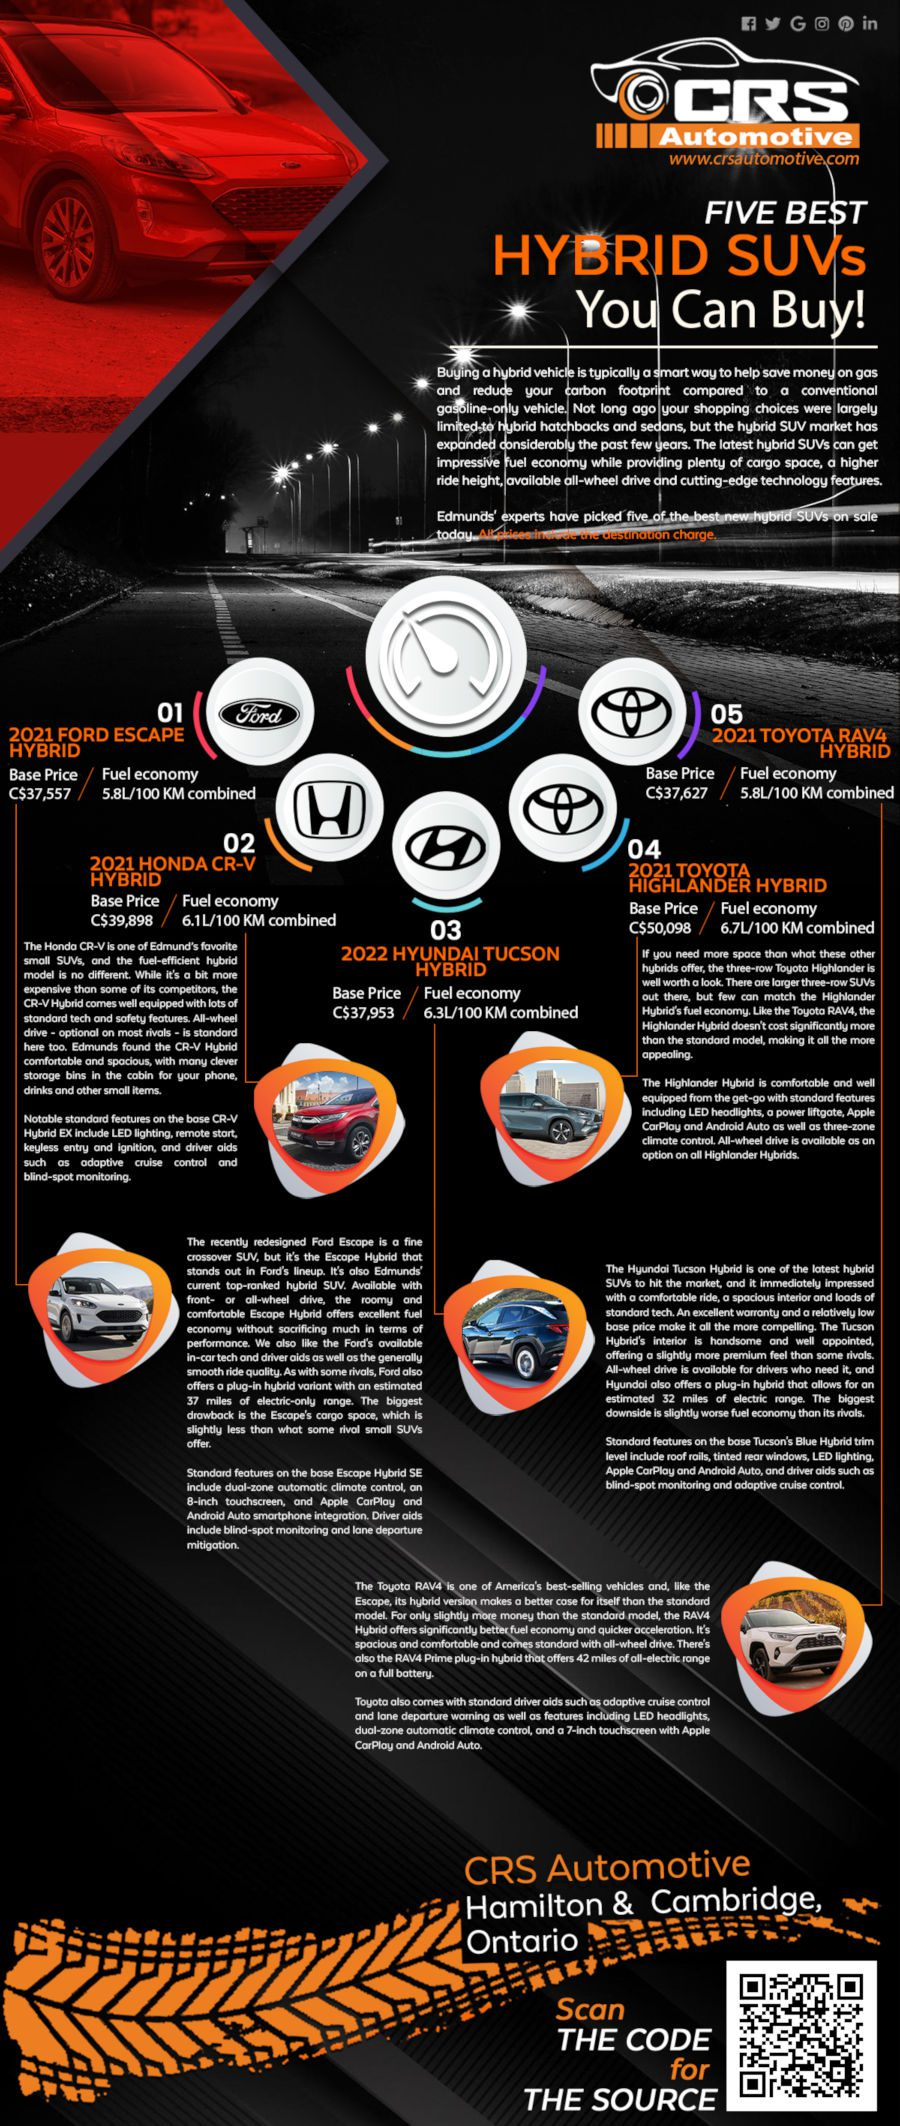 5 Best Hybrid SUVs you can Buy in Canada 2021 Infographic CRS Automotive Hamilton